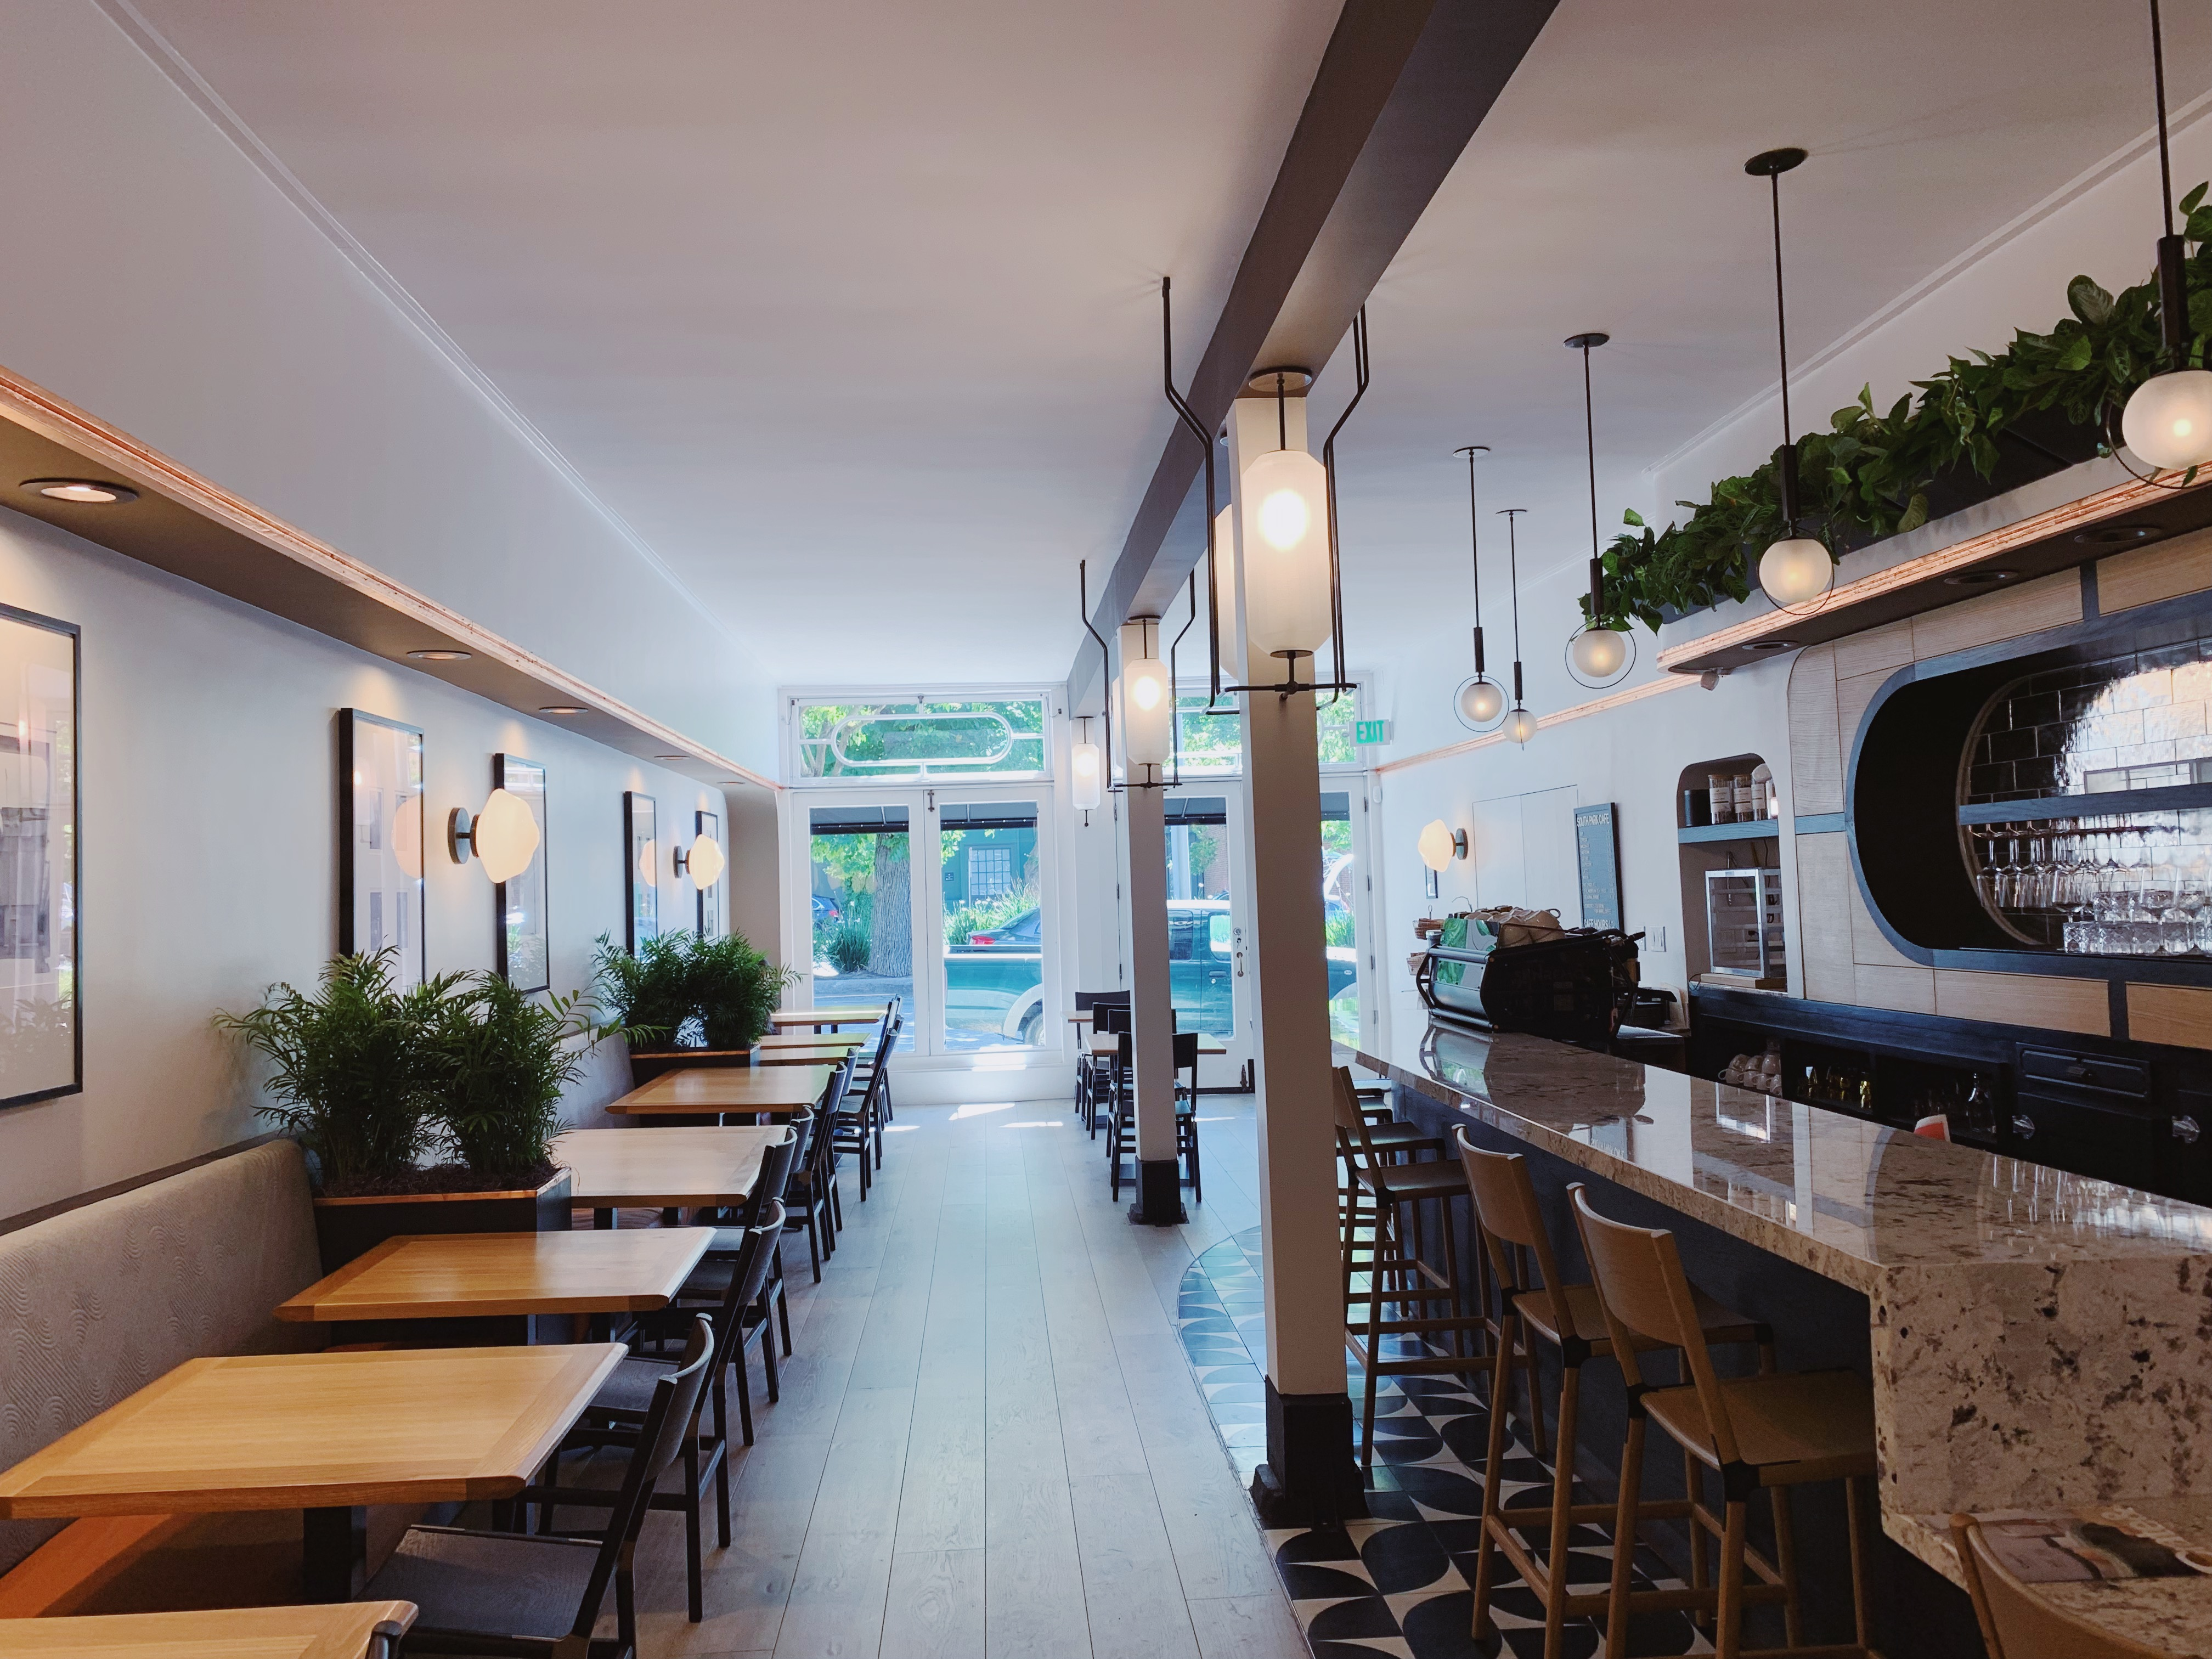 Inside the new South Park Cafe, where tables and a bar are visible